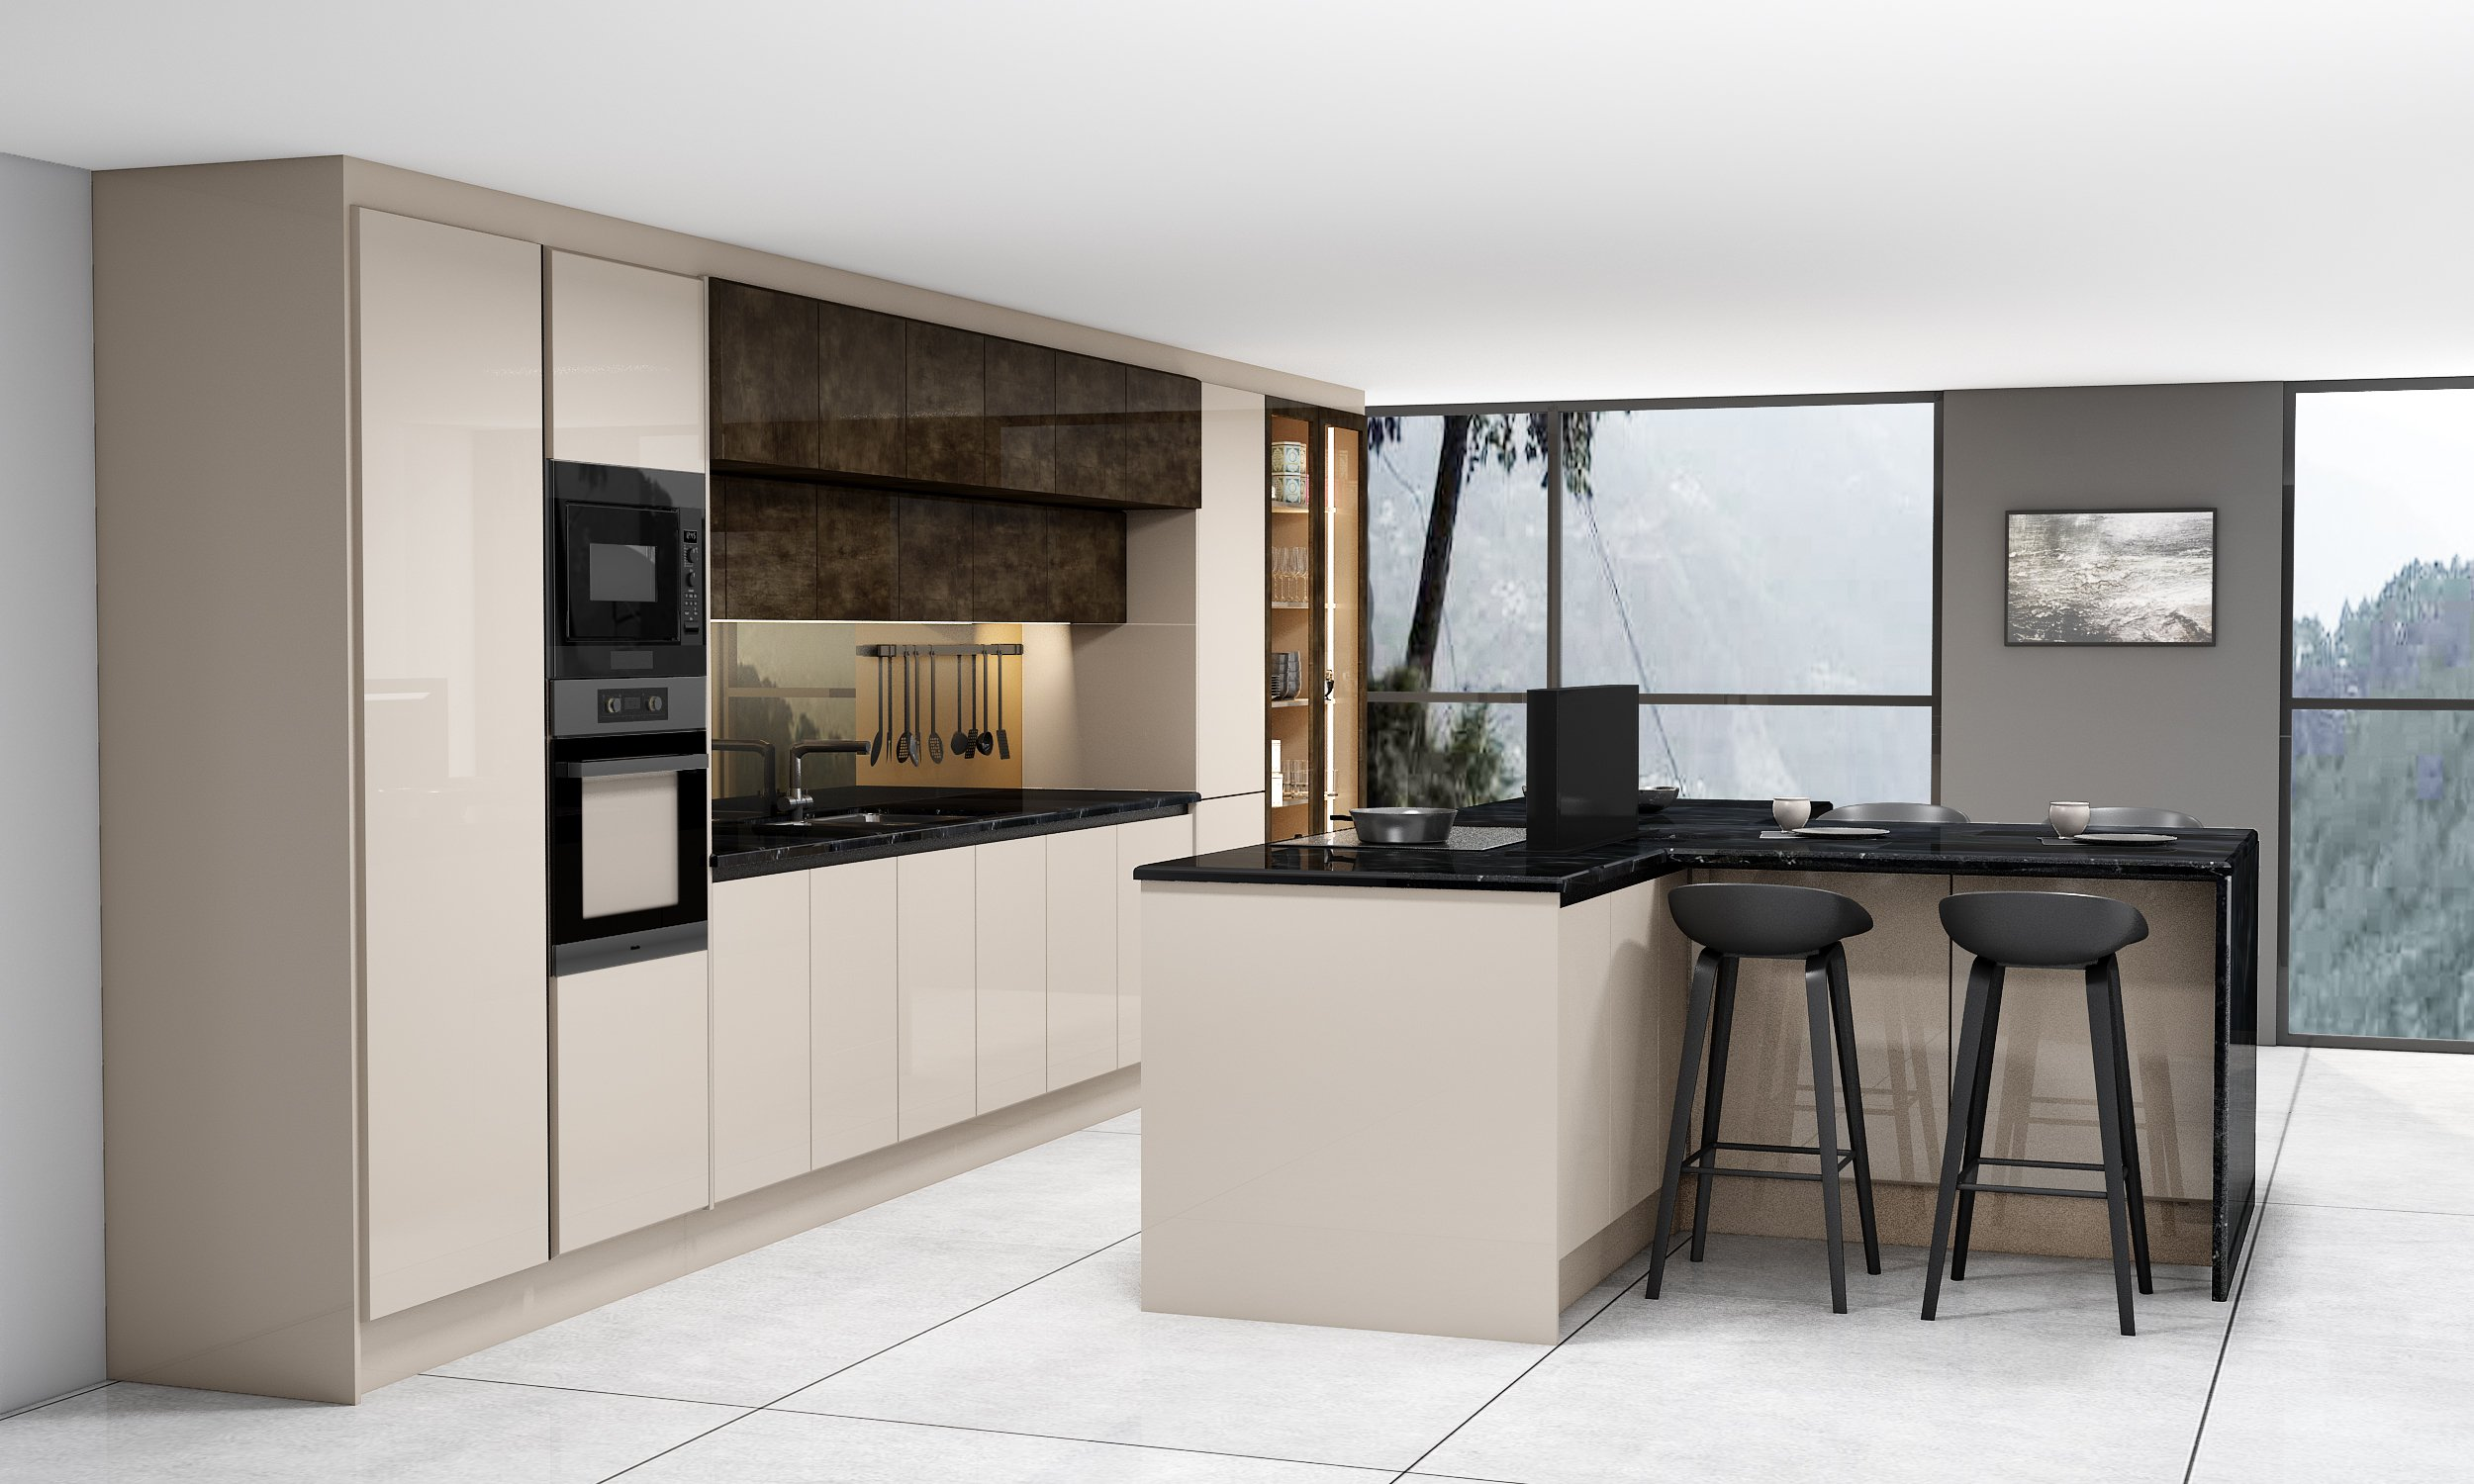 Handleless Kitchen With Black Handle Profile in Cashmere Grey Gloss Finish